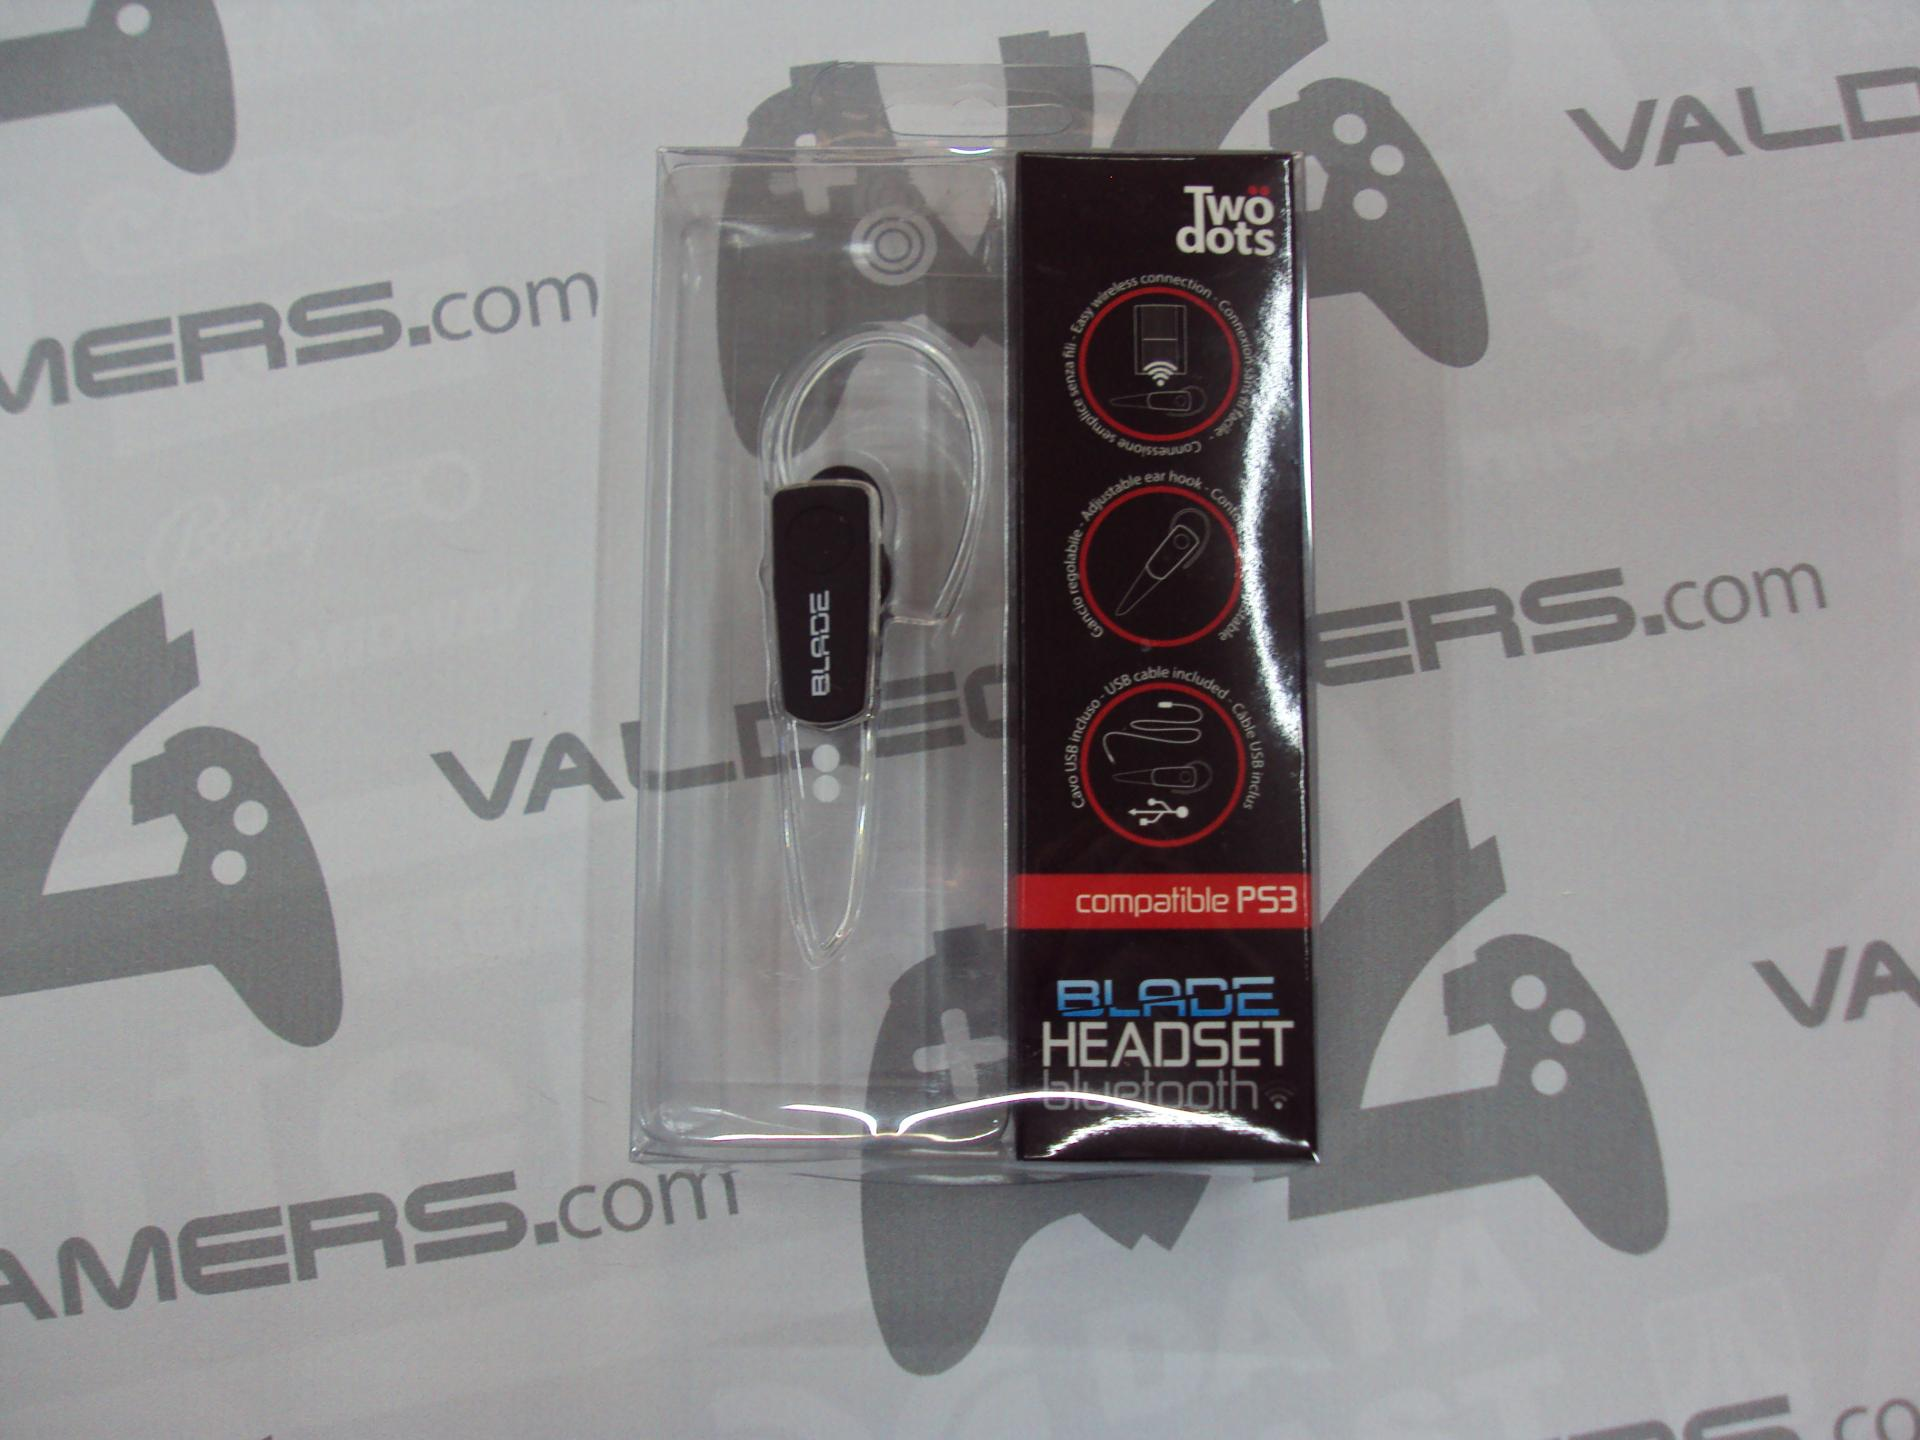 Auricular ps3 Two Dots - Headset Blade Bluetooth - nuevo